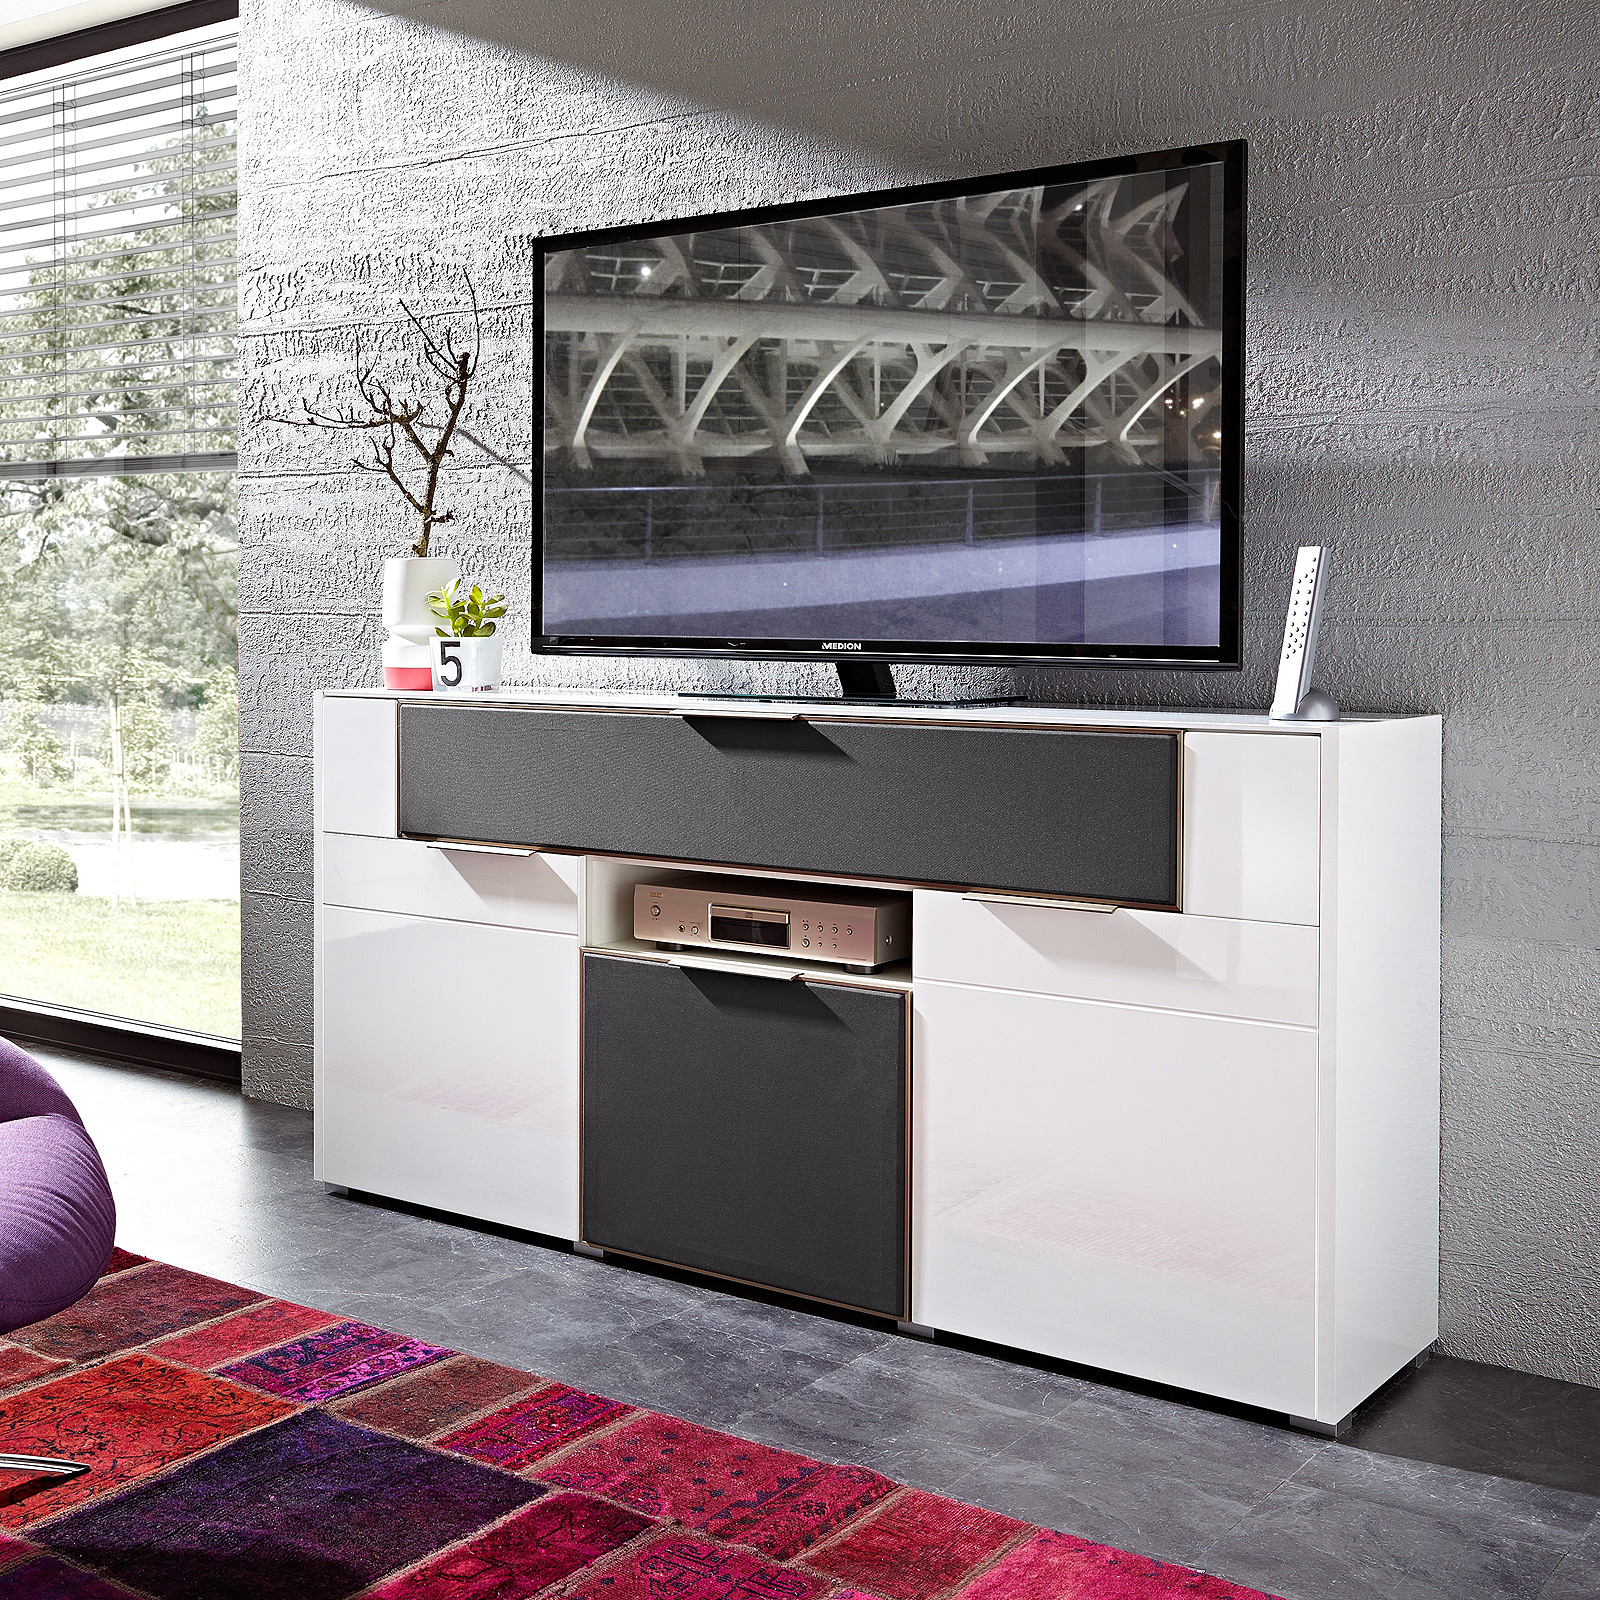 media sideboard median mediaboard kommode in wei hochglanz und grau ebay. Black Bedroom Furniture Sets. Home Design Ideas